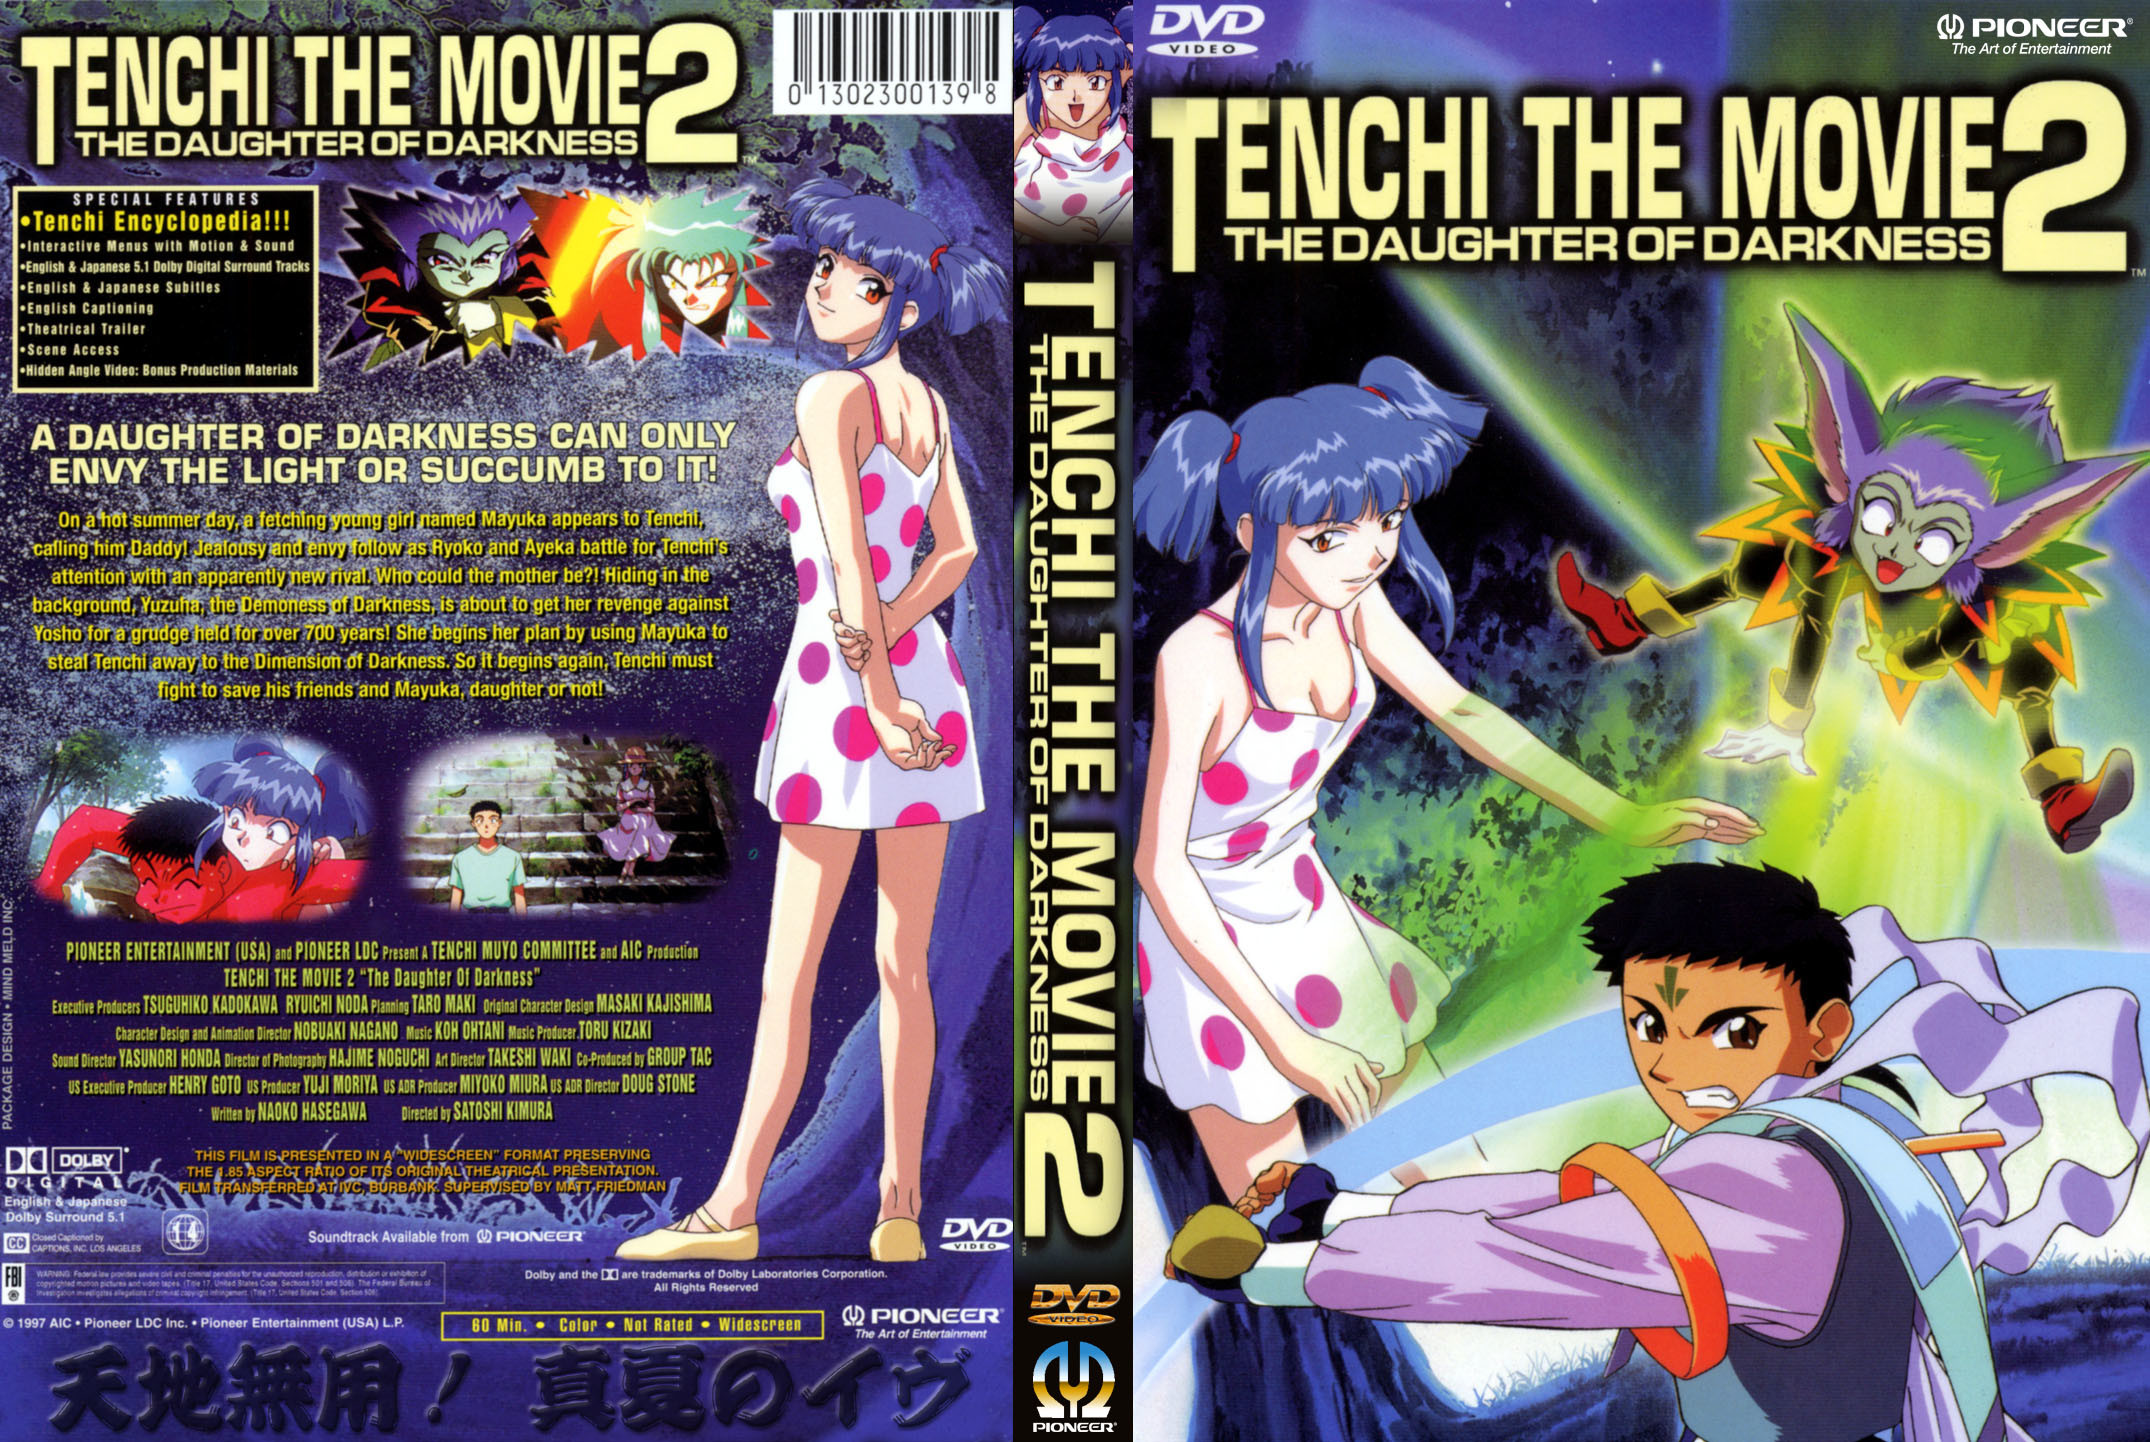 2150x1442 Tenchi The Movie 2 - The Daughter Of Darkness (Manatsuno Eve) DVD Cover